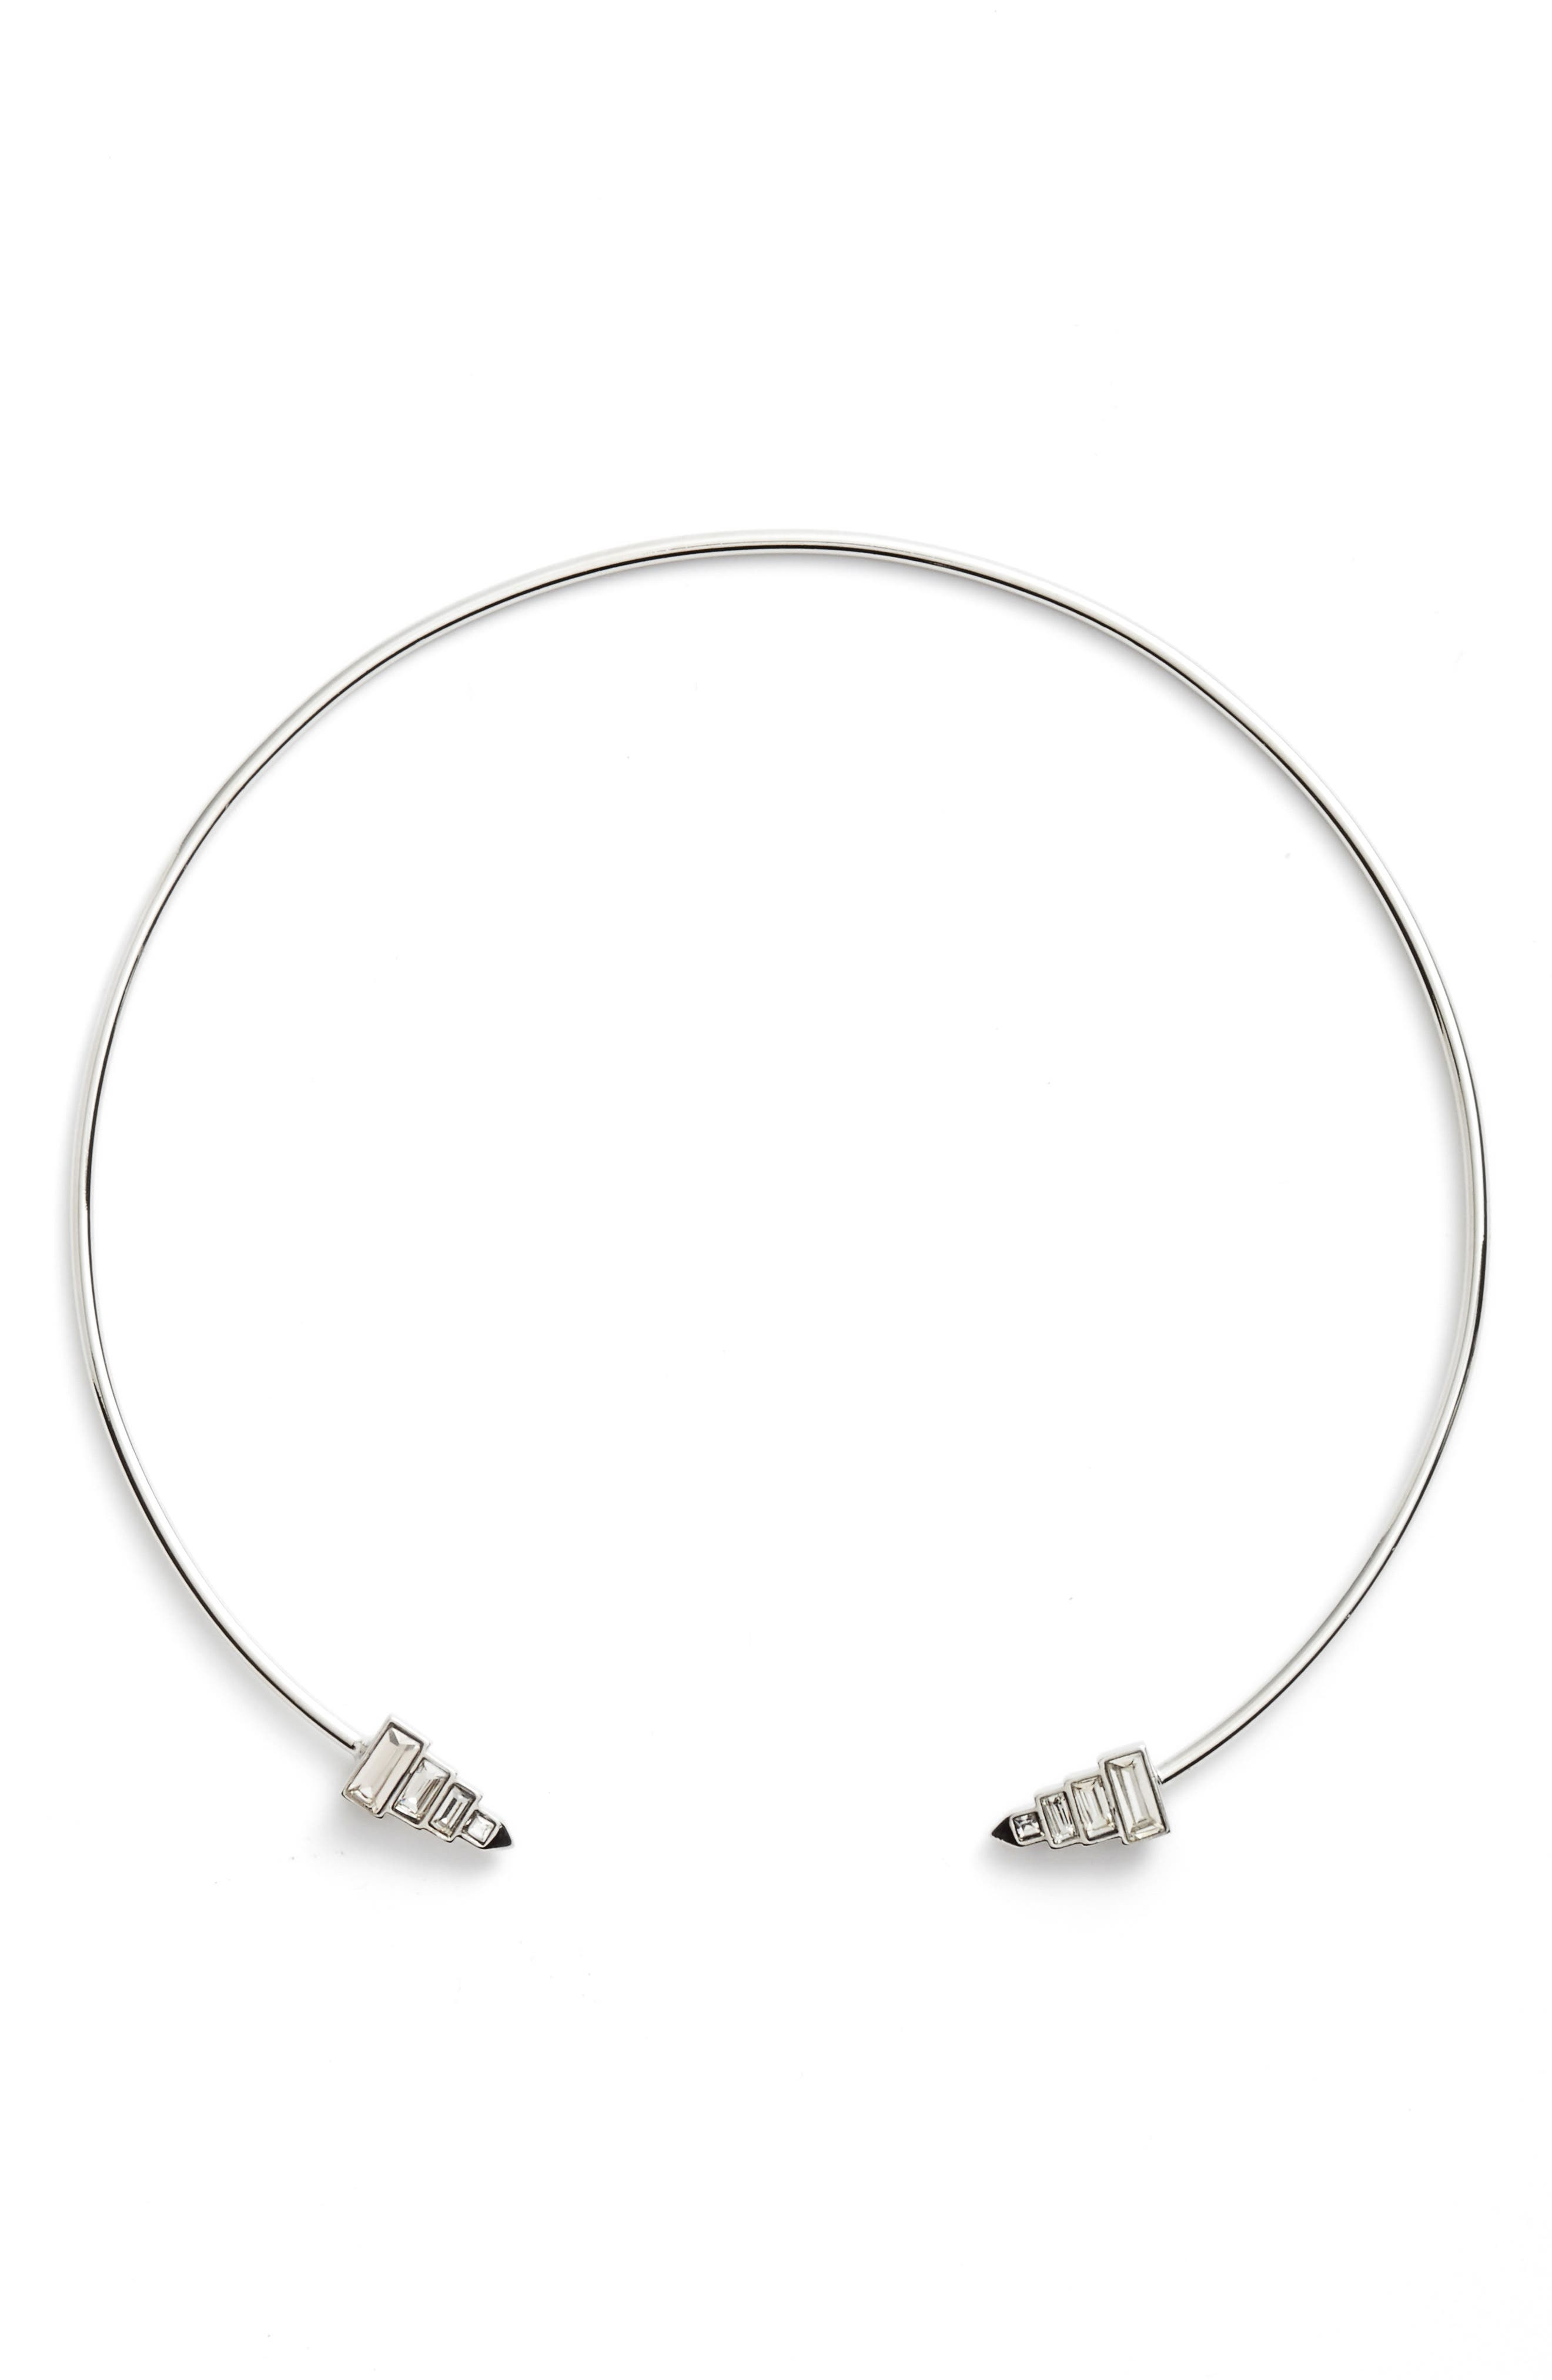 Open Collar Necklace,                         Main,                         color, Clear/ Silver